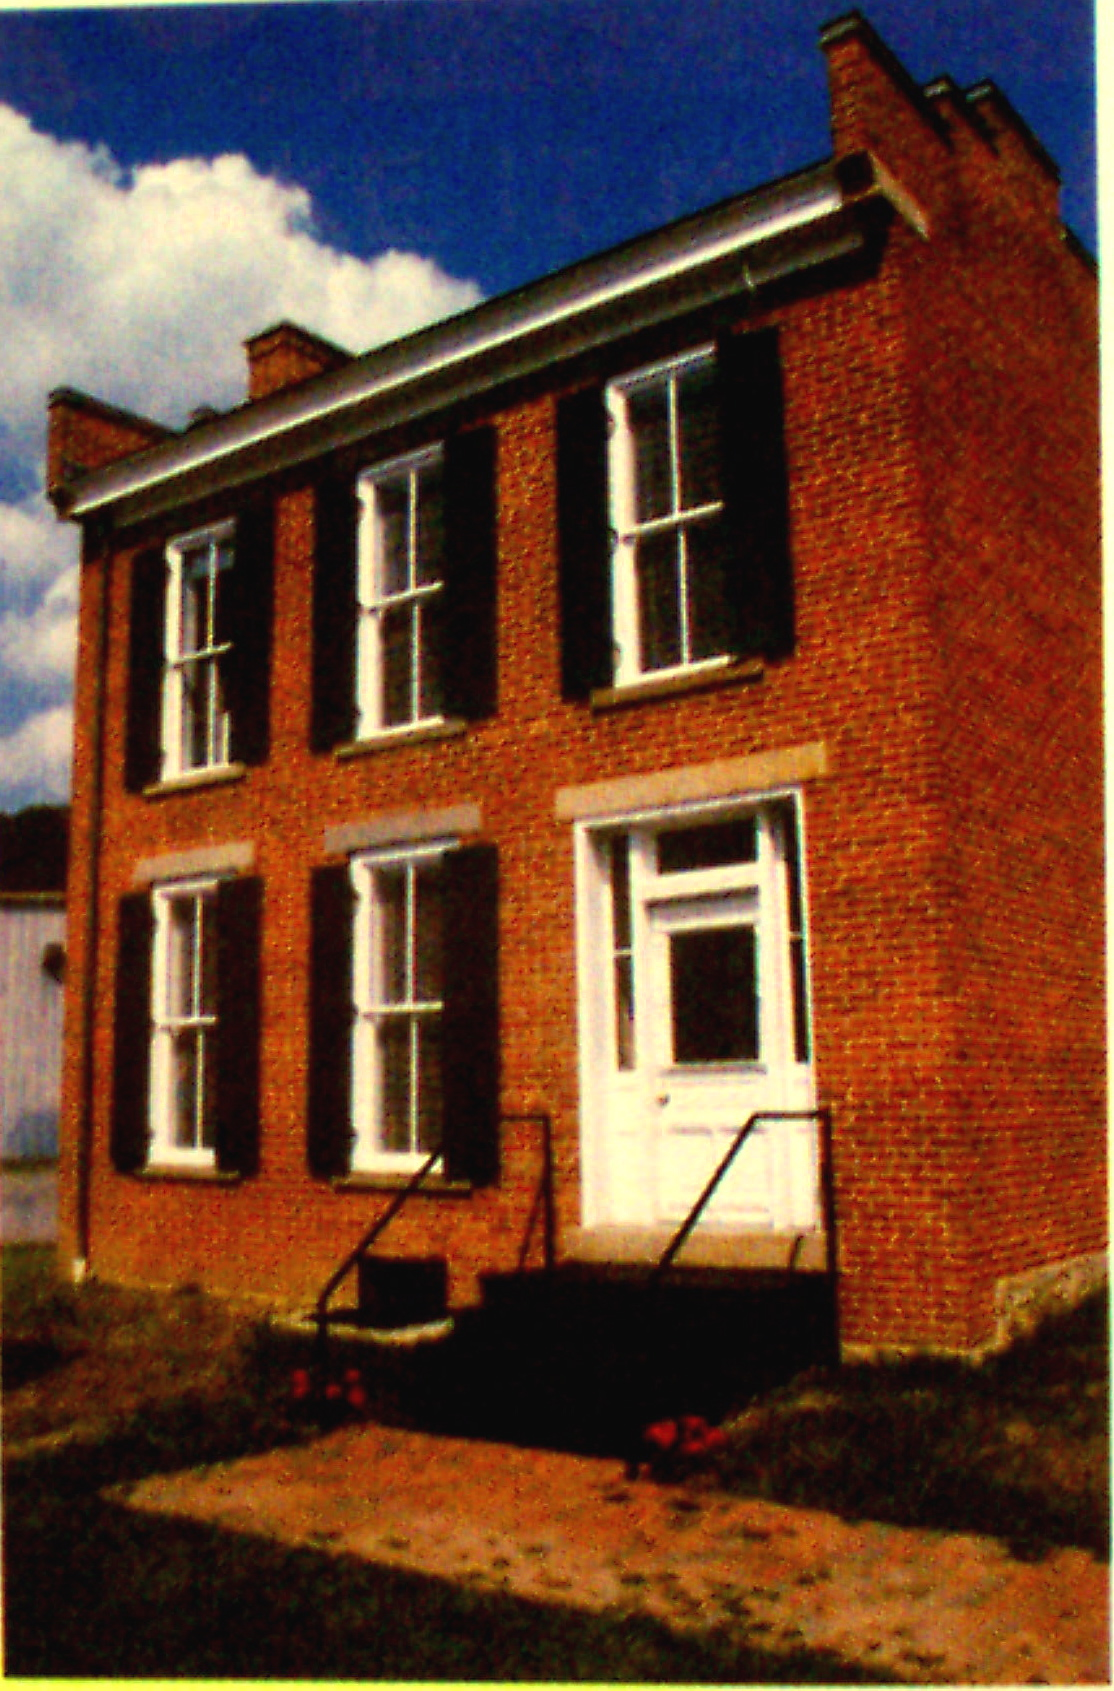 38a-JOHN PARKER'S NEWLY RESTORED HOUSE, IT IS NOW A MUSEUM (c. OHIO HISTORICAL SOICETY)